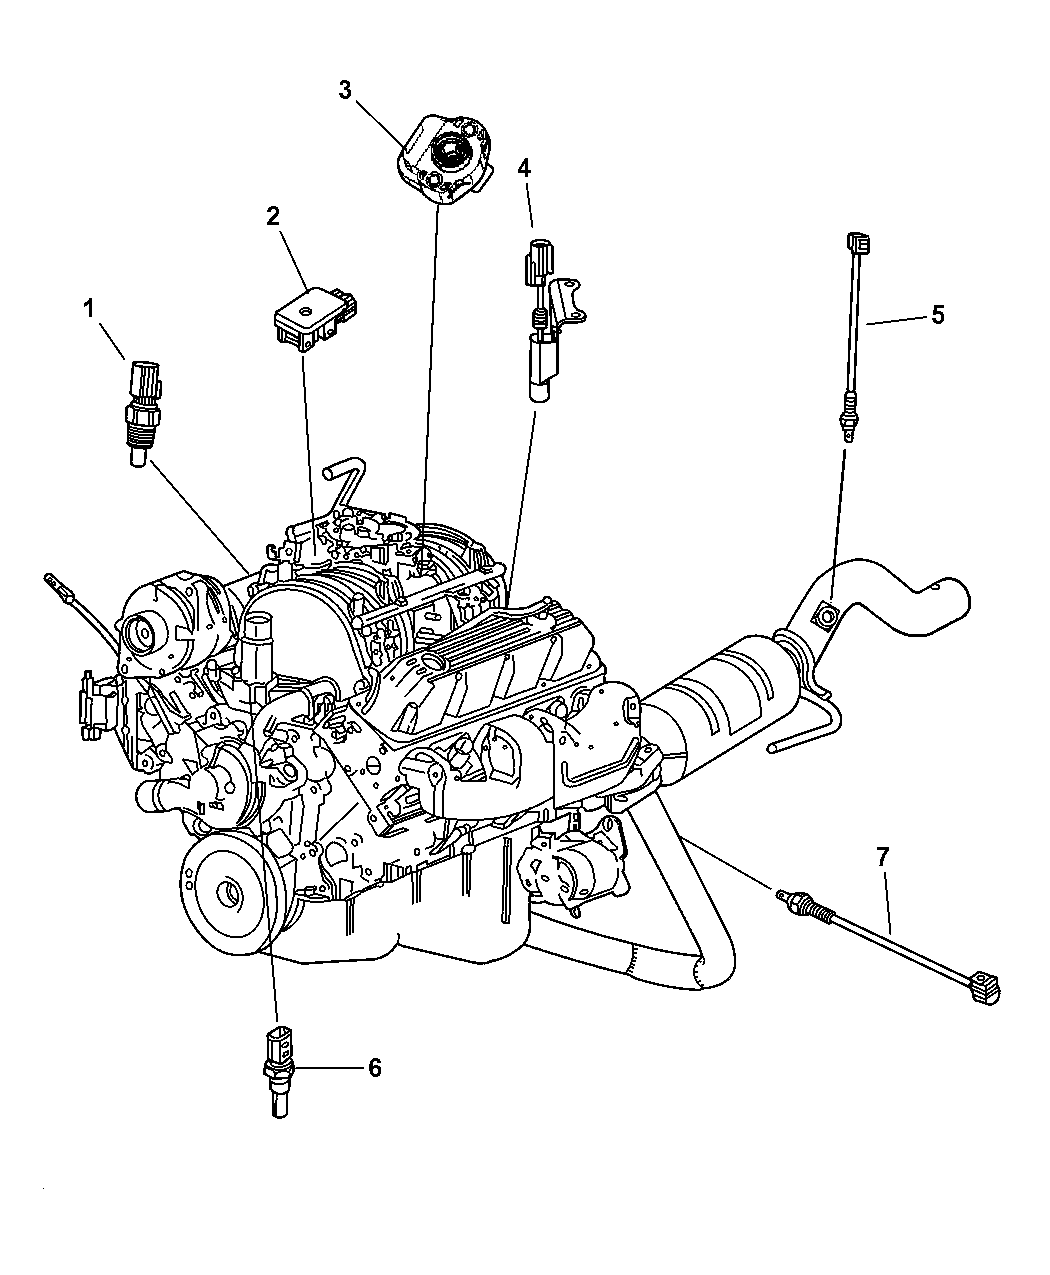 2001 Dodge Ram 2500 Parts Diagram